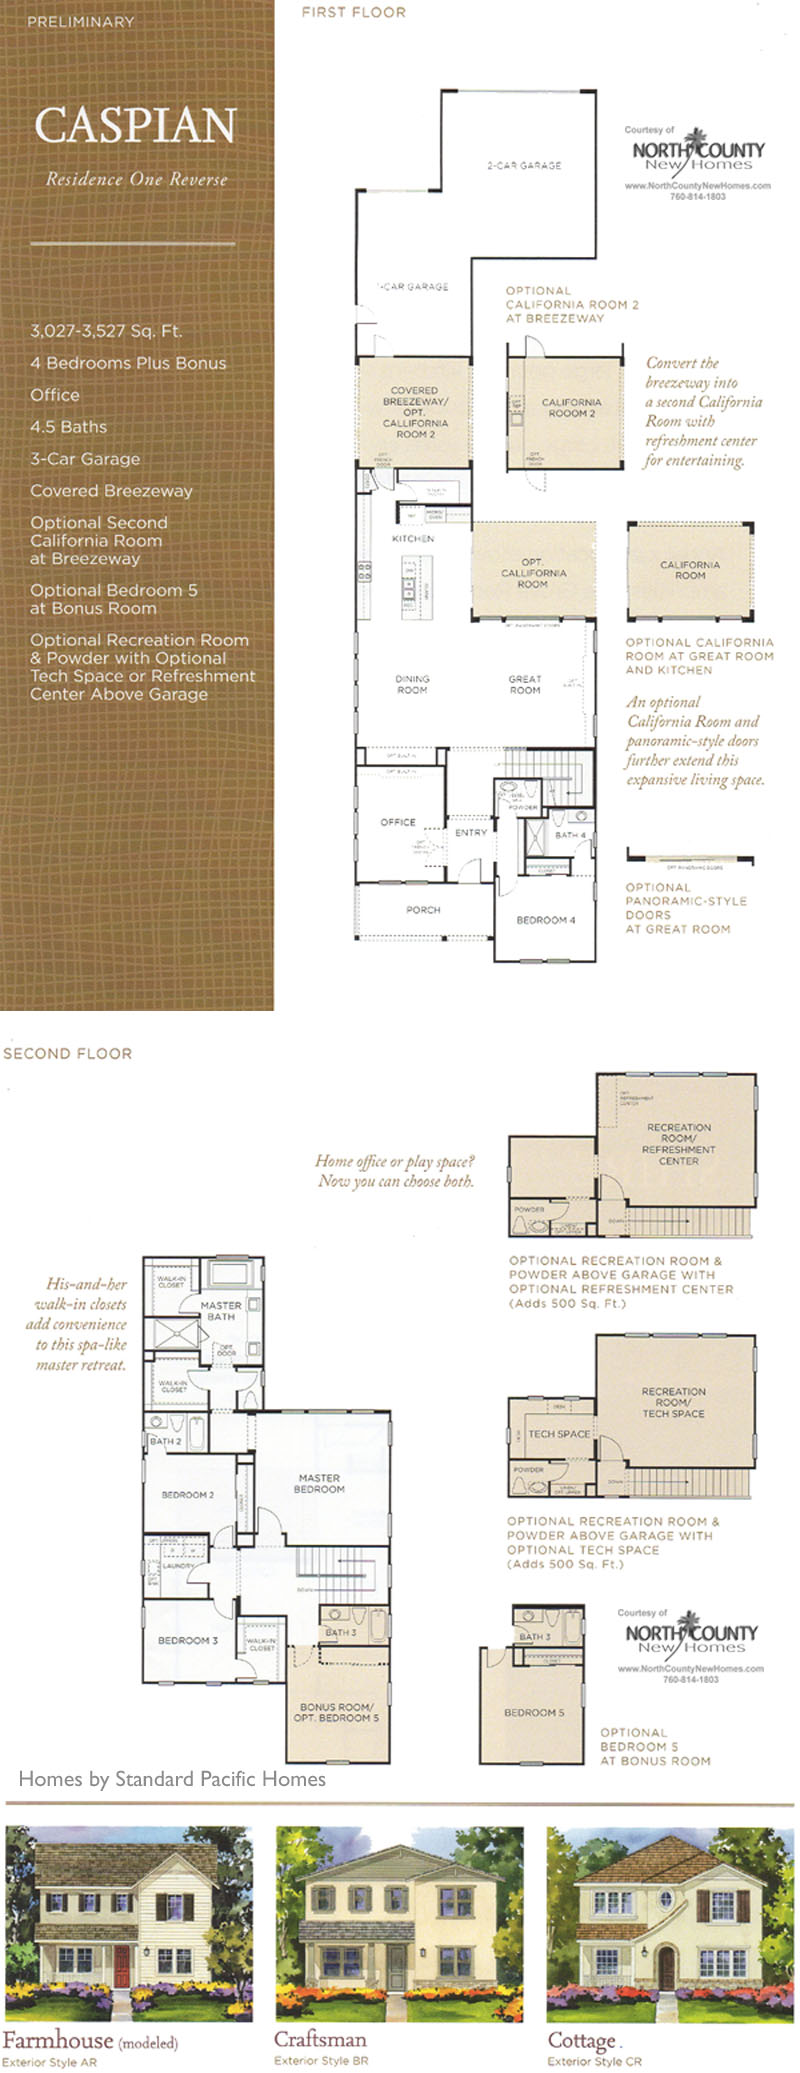 New homes in North County San Diego at Harmony Grove Village, Andalucia . San Diego, Escondido and San Marcos real estate. Caspian Floor Plan 1